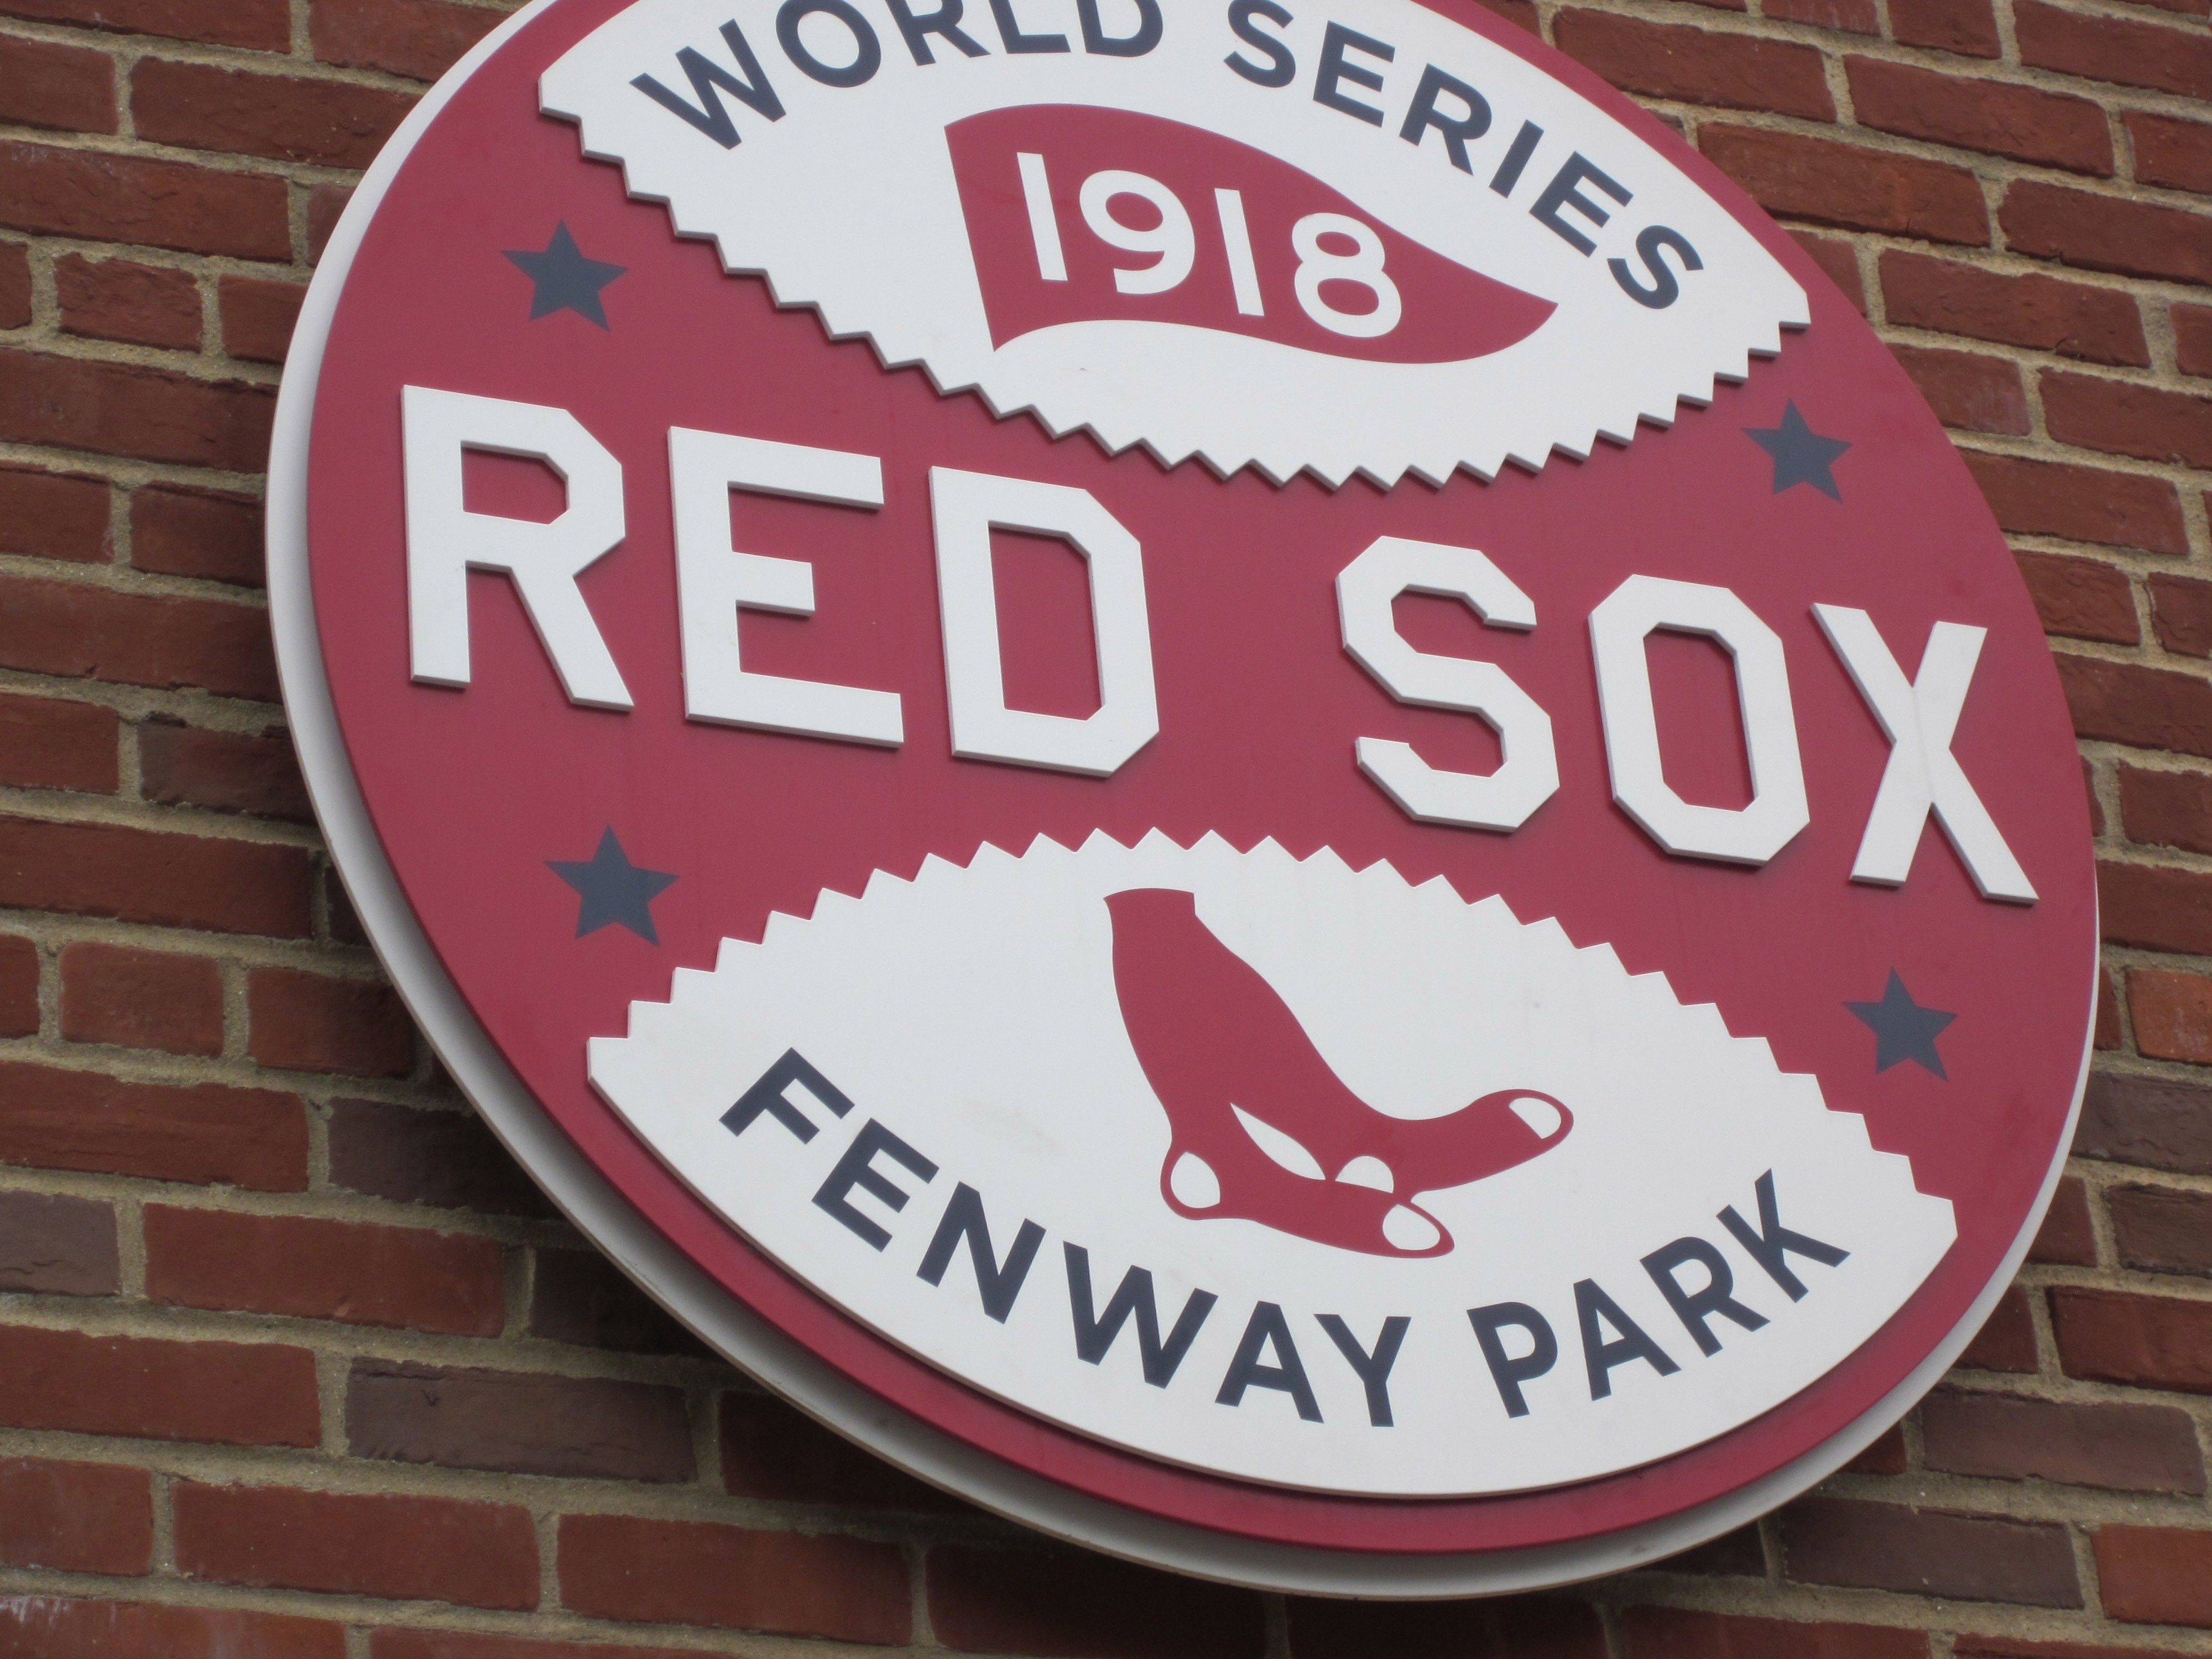 An emblem from the last time the Cubs and Red Sox met at Fenway Park, for the 1918 World Series, adorns the famed Boston ballpark. The Cubs played the Red Sox Friday, May 20, in a three-game series.